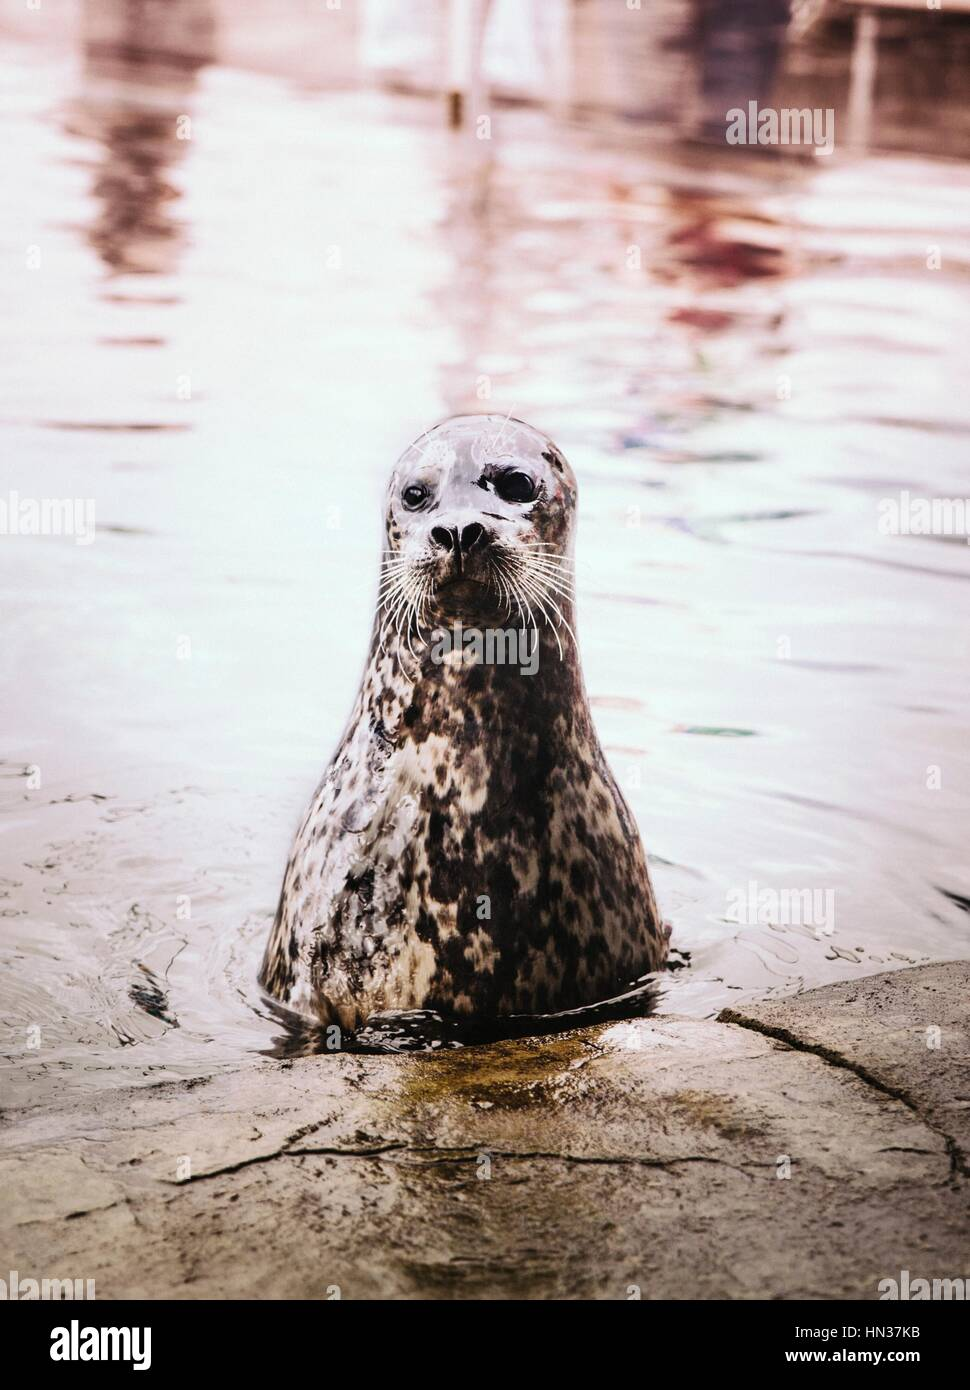 A Sea Lion just above the waters surface Stock Photo